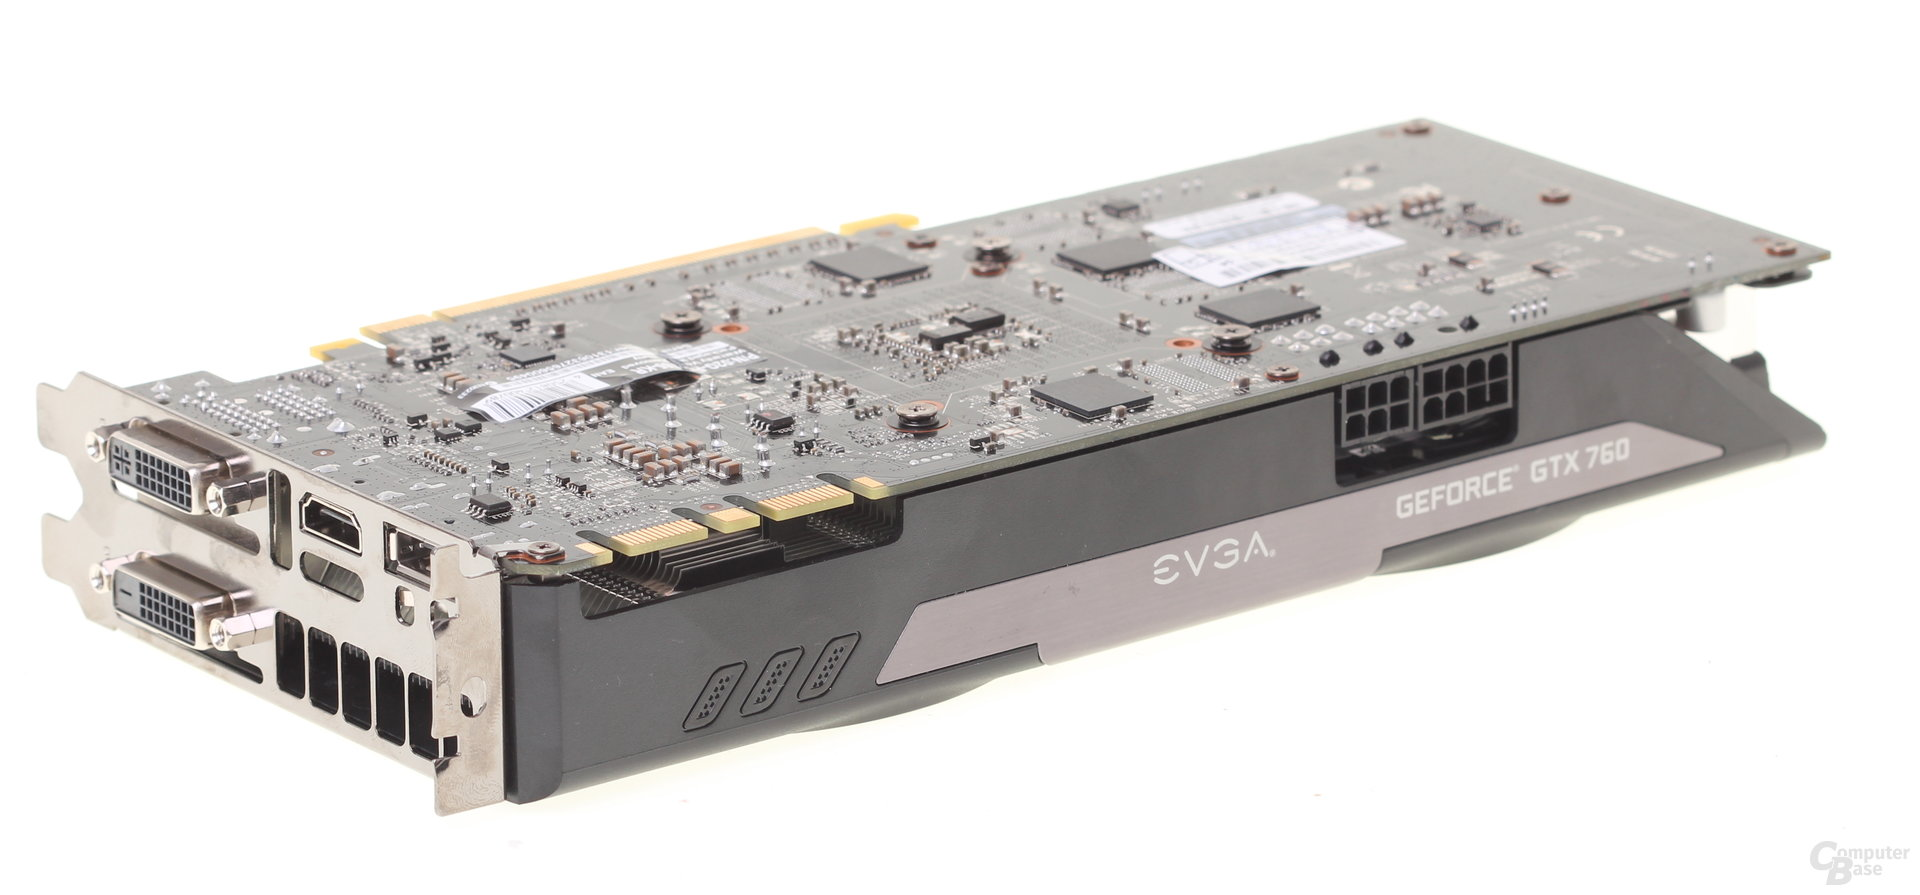 EVGA GeForce GTX 760 SC ACX